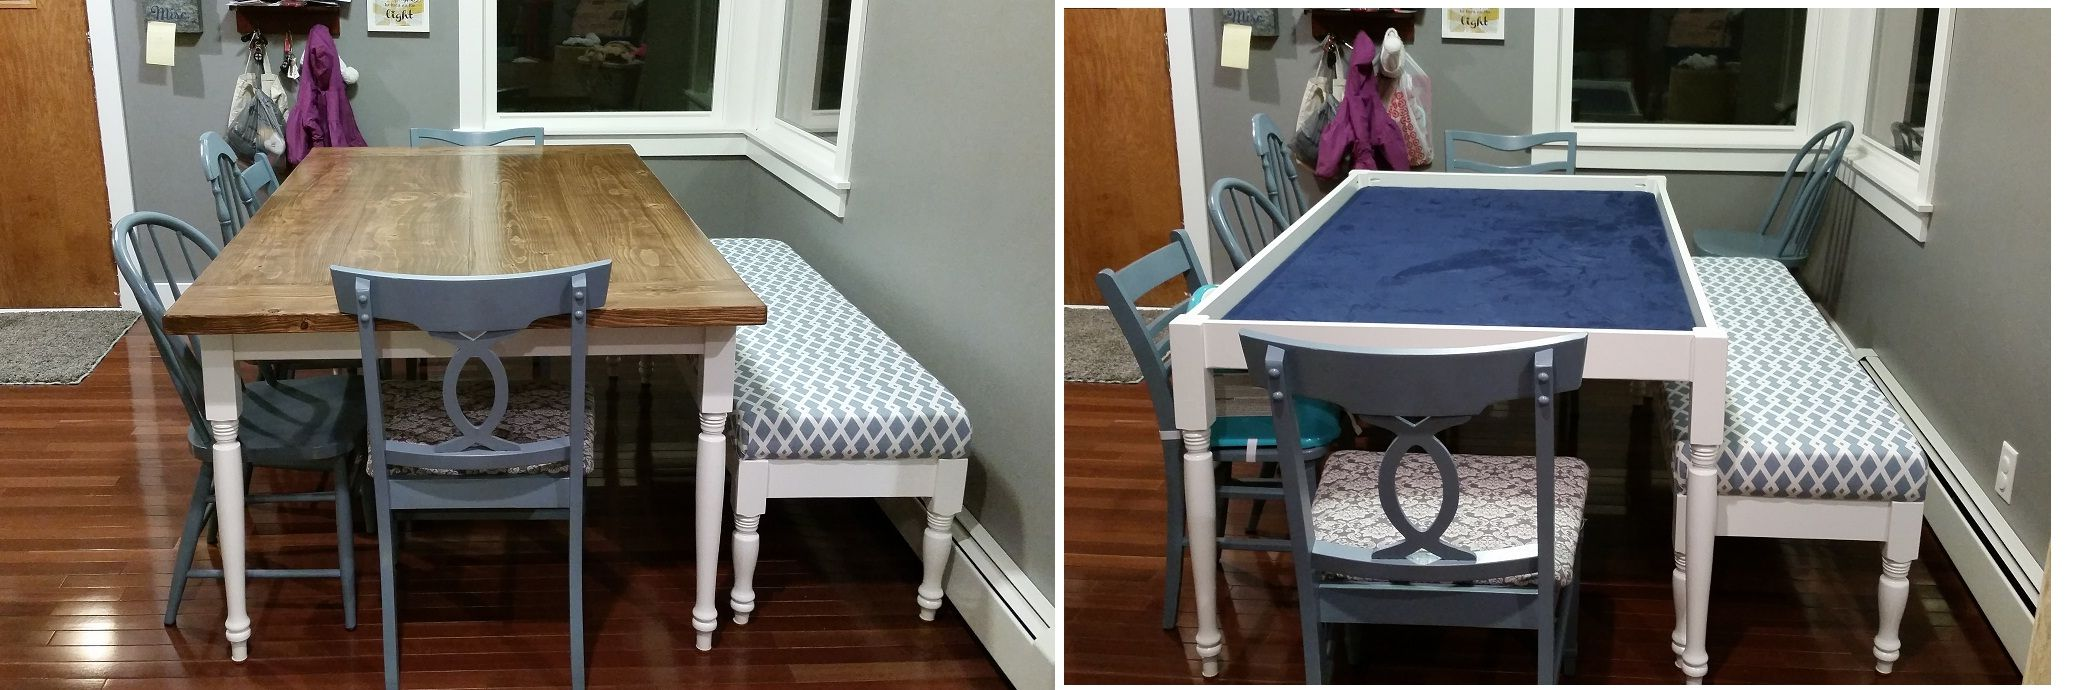 Dining gaming table do it yourself home projects from ana white dining gaming table diy projects solutioingenieria Image collections